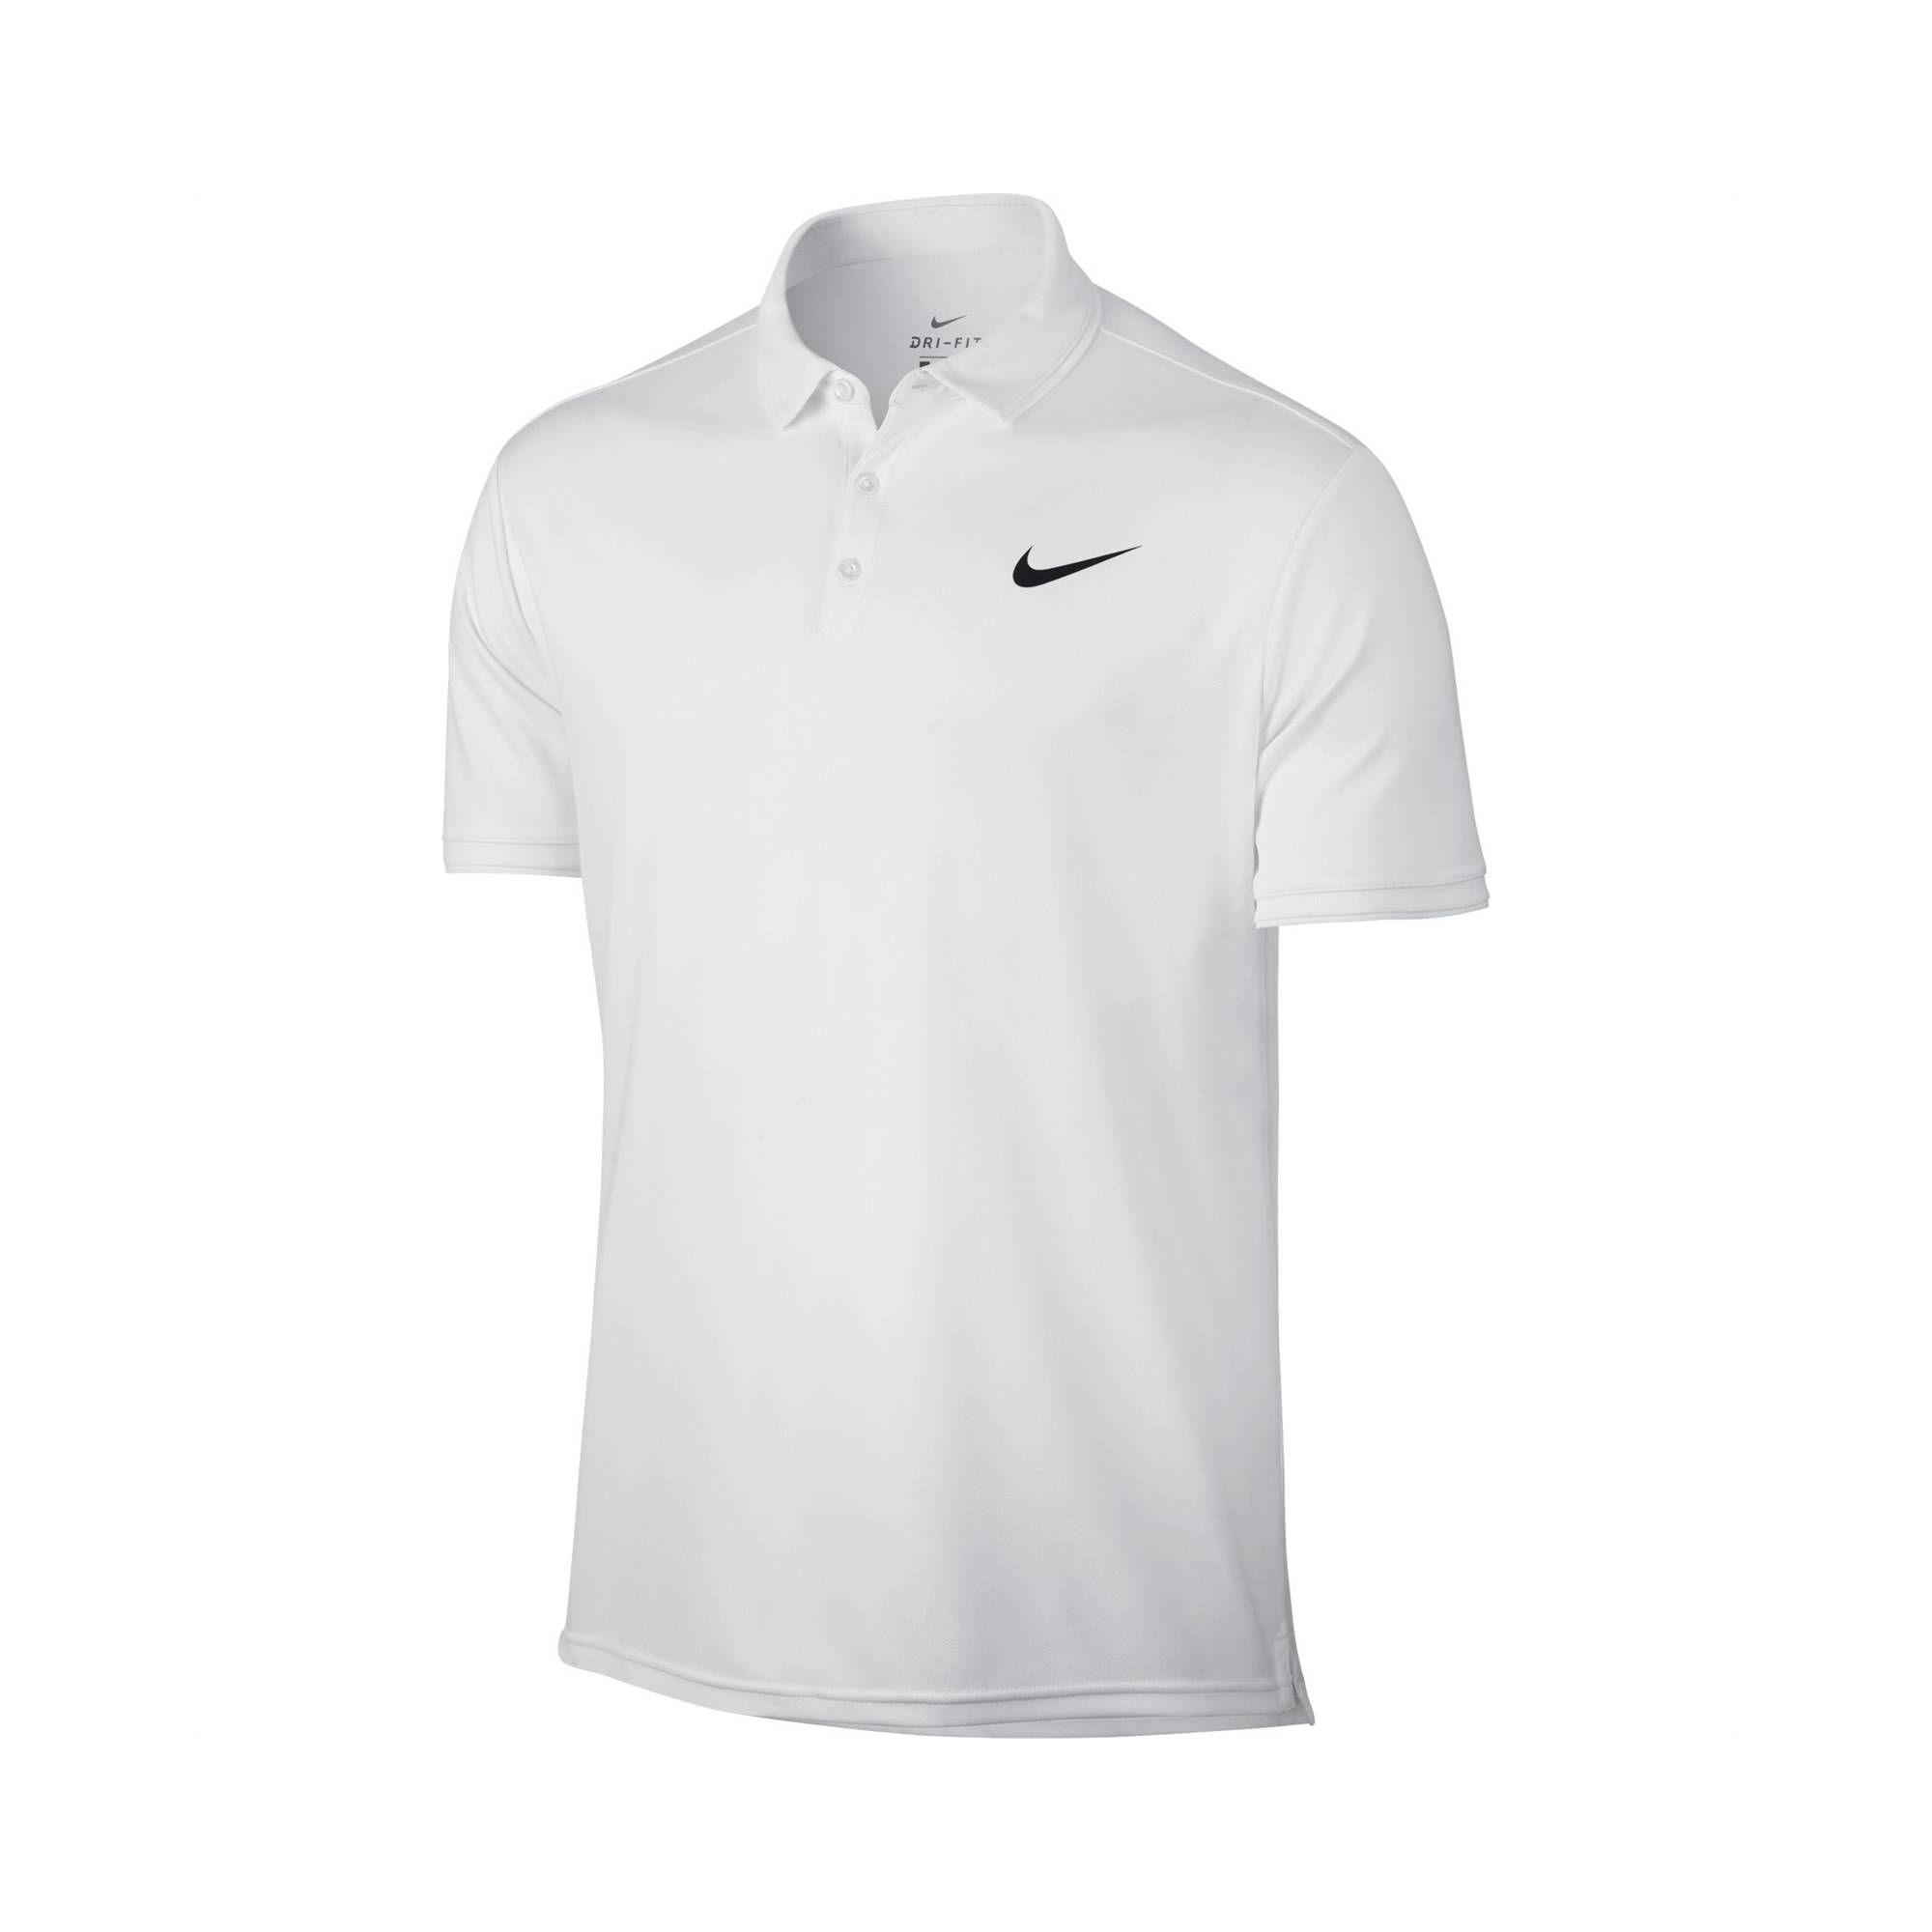 Image of Nike Dry Team Polo All White S